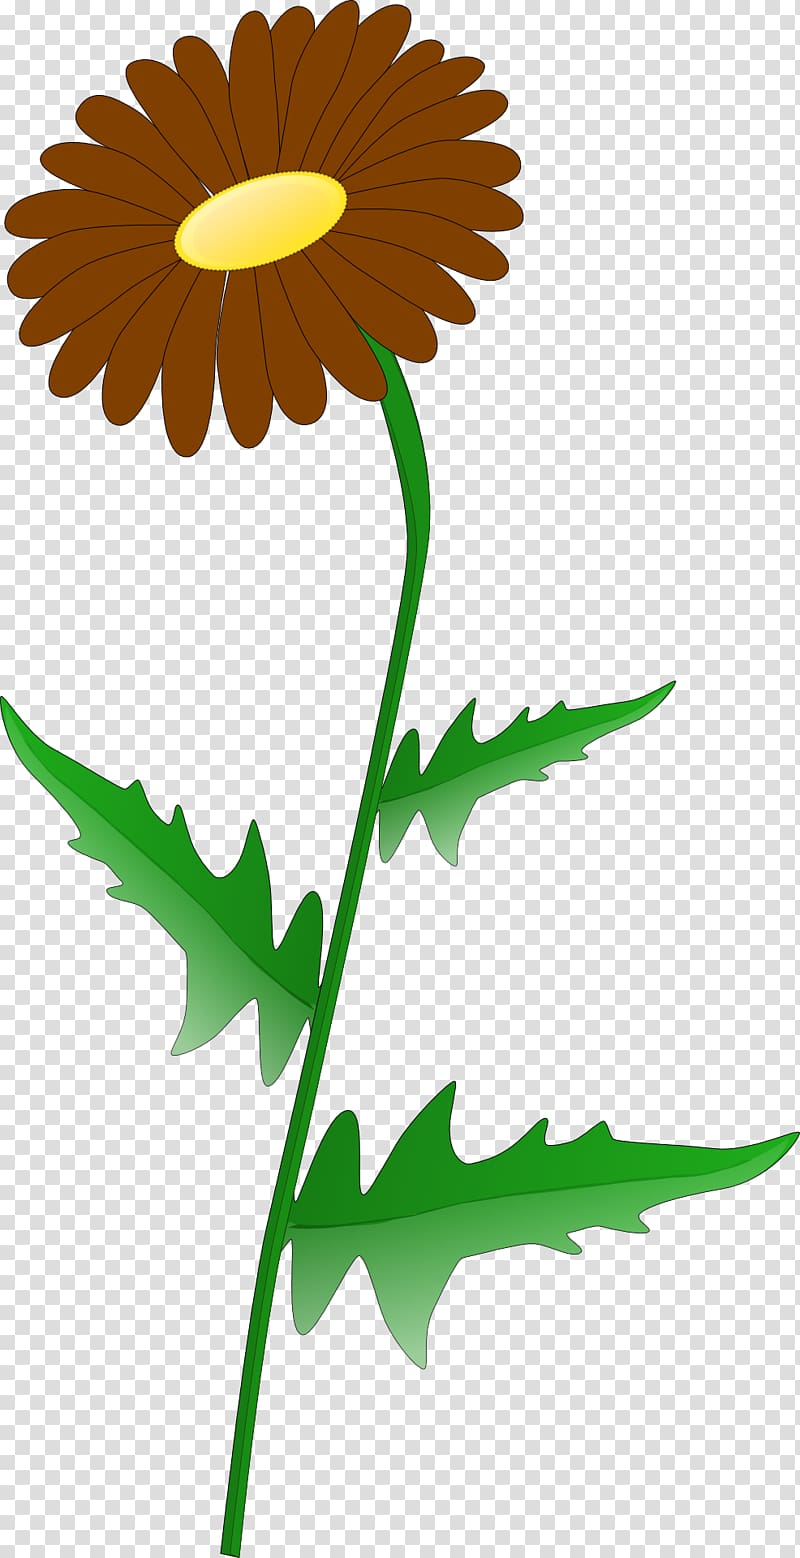 Greenery border transparent background PNG clipart.